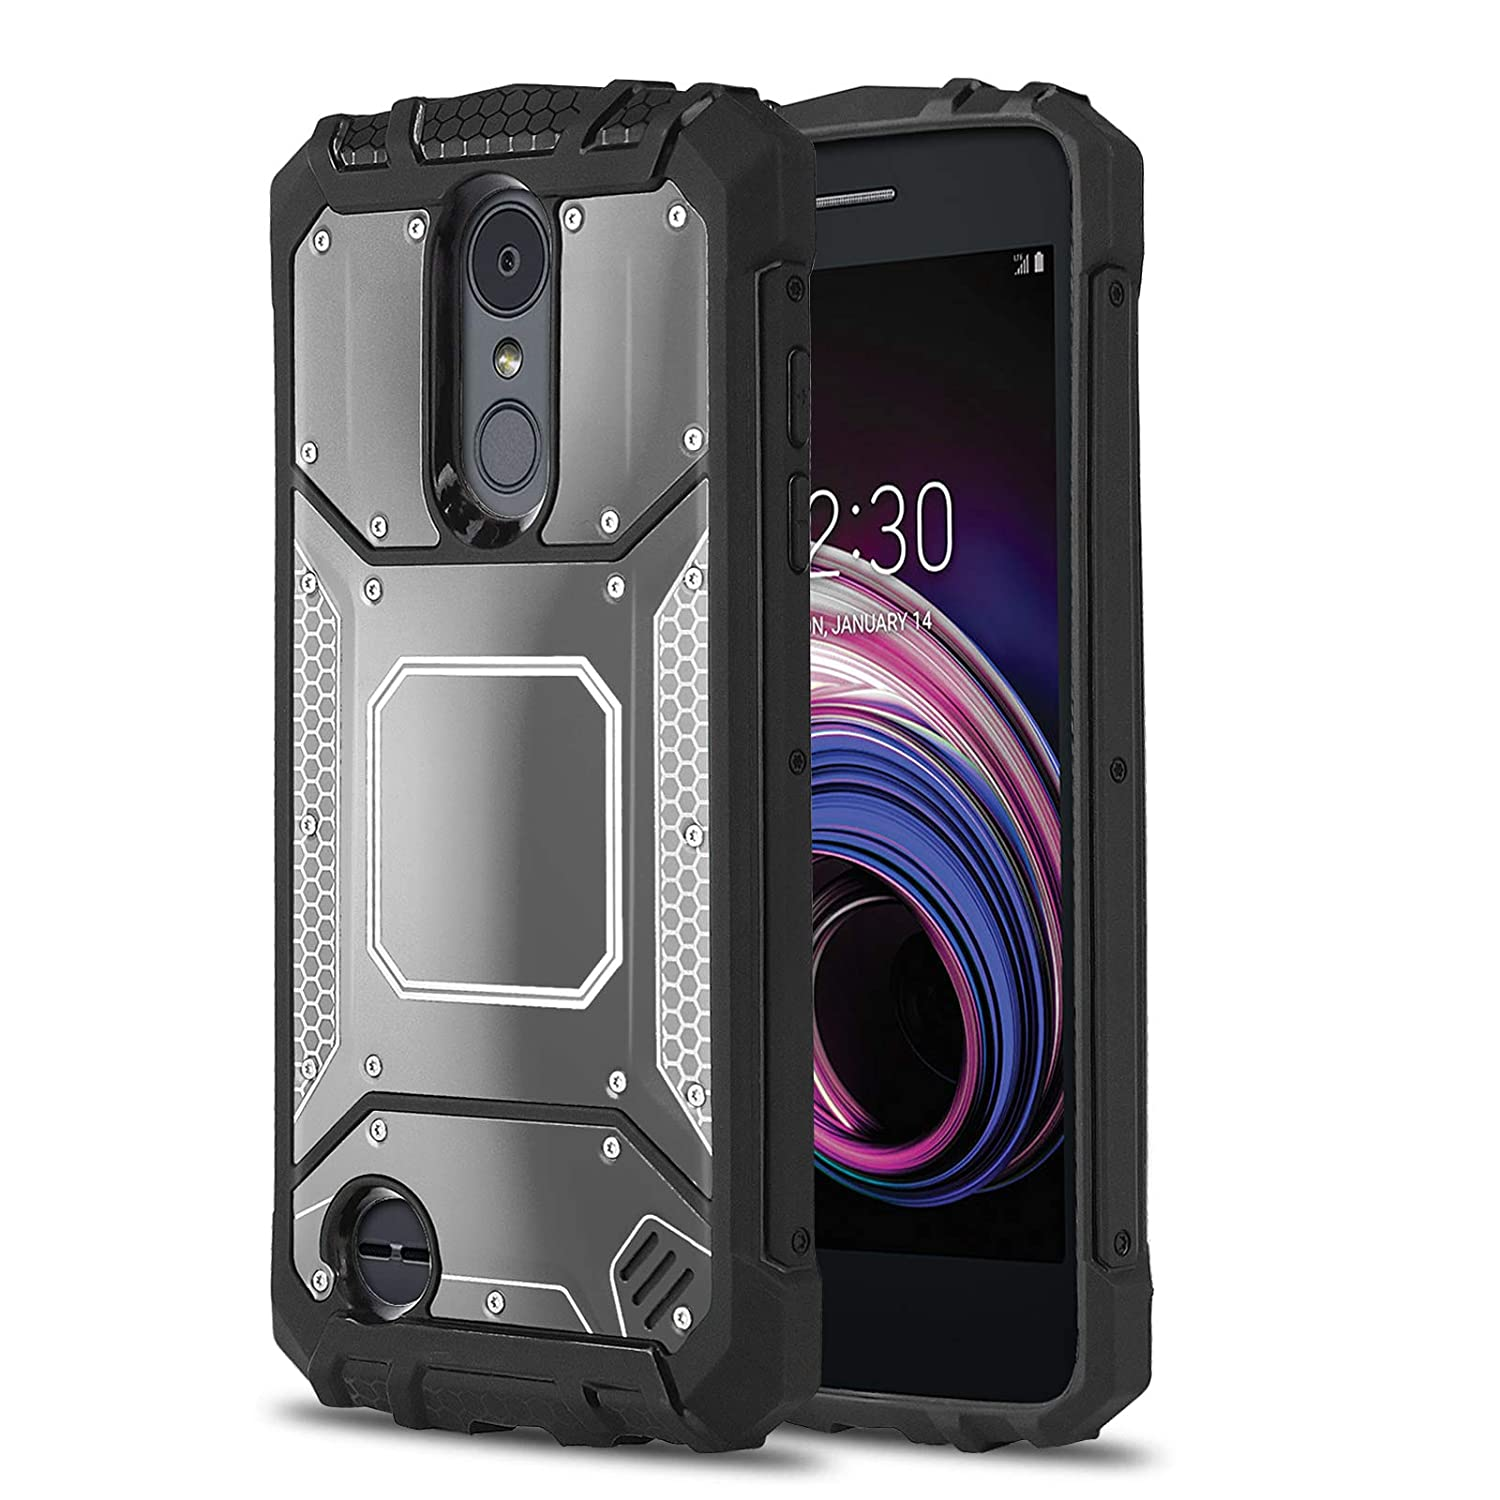 half off e2991 157a9 Phone Case for [LG K8 Plus (2018) US Cellular], [Alloy Series][Gun Metal]  Aluminium [Metal Plate][Military Grade] Shockproof [Impact Resistant] Cover  ...